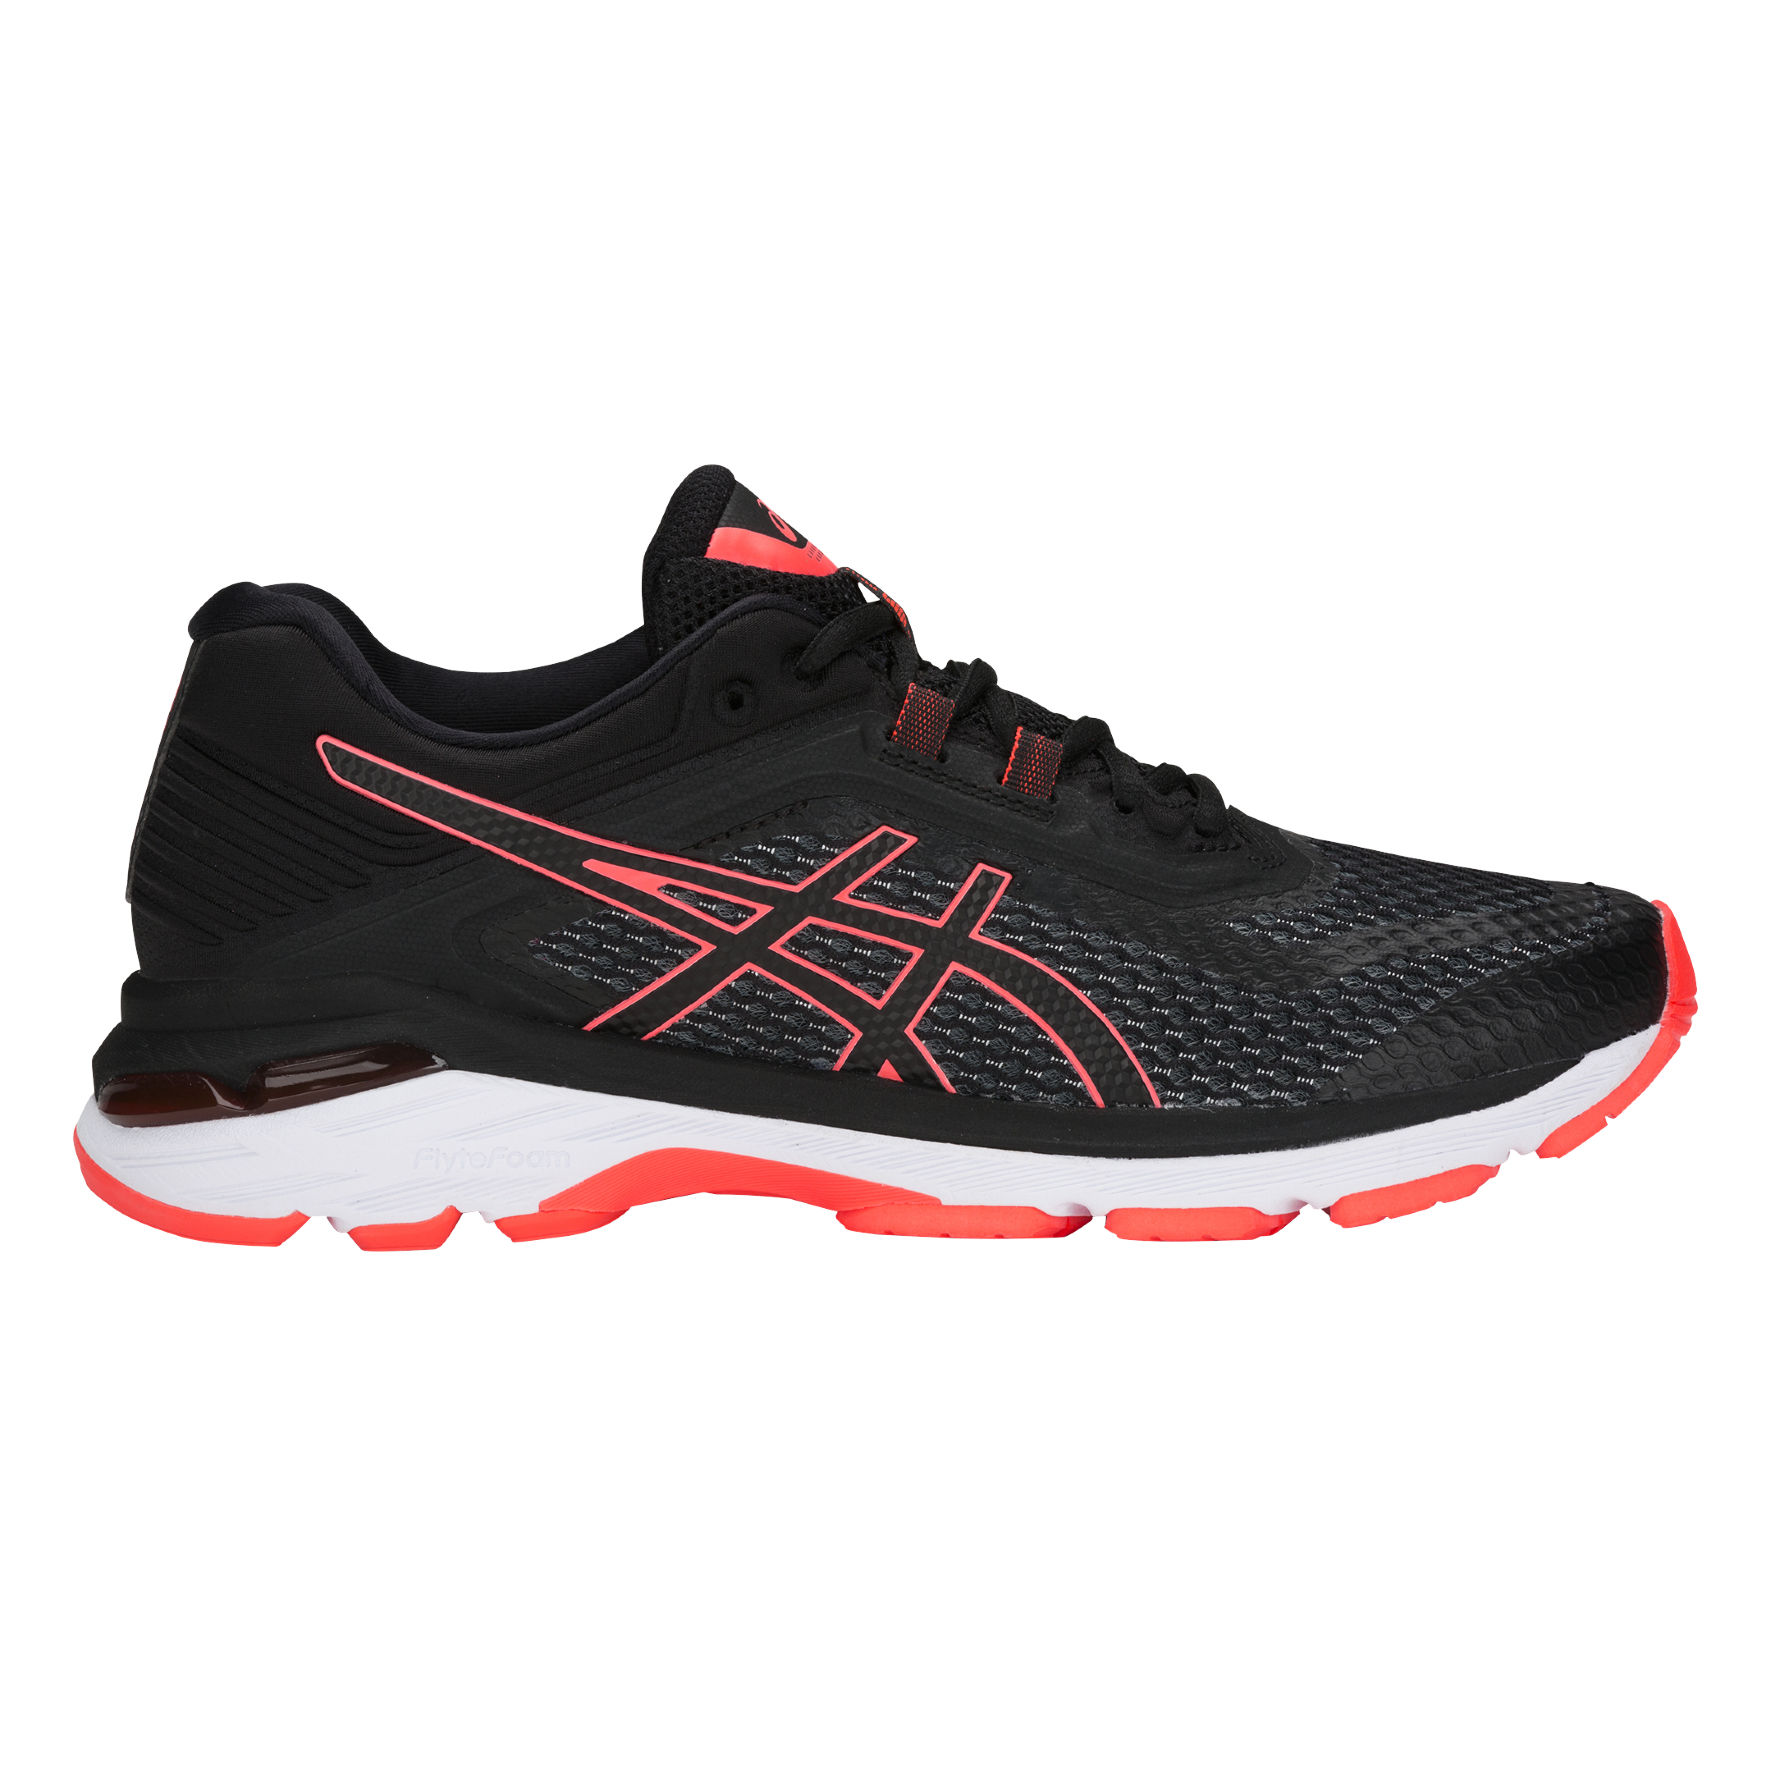 Asics Lady Gel GT 2000 6 2A in Schwarz Orange